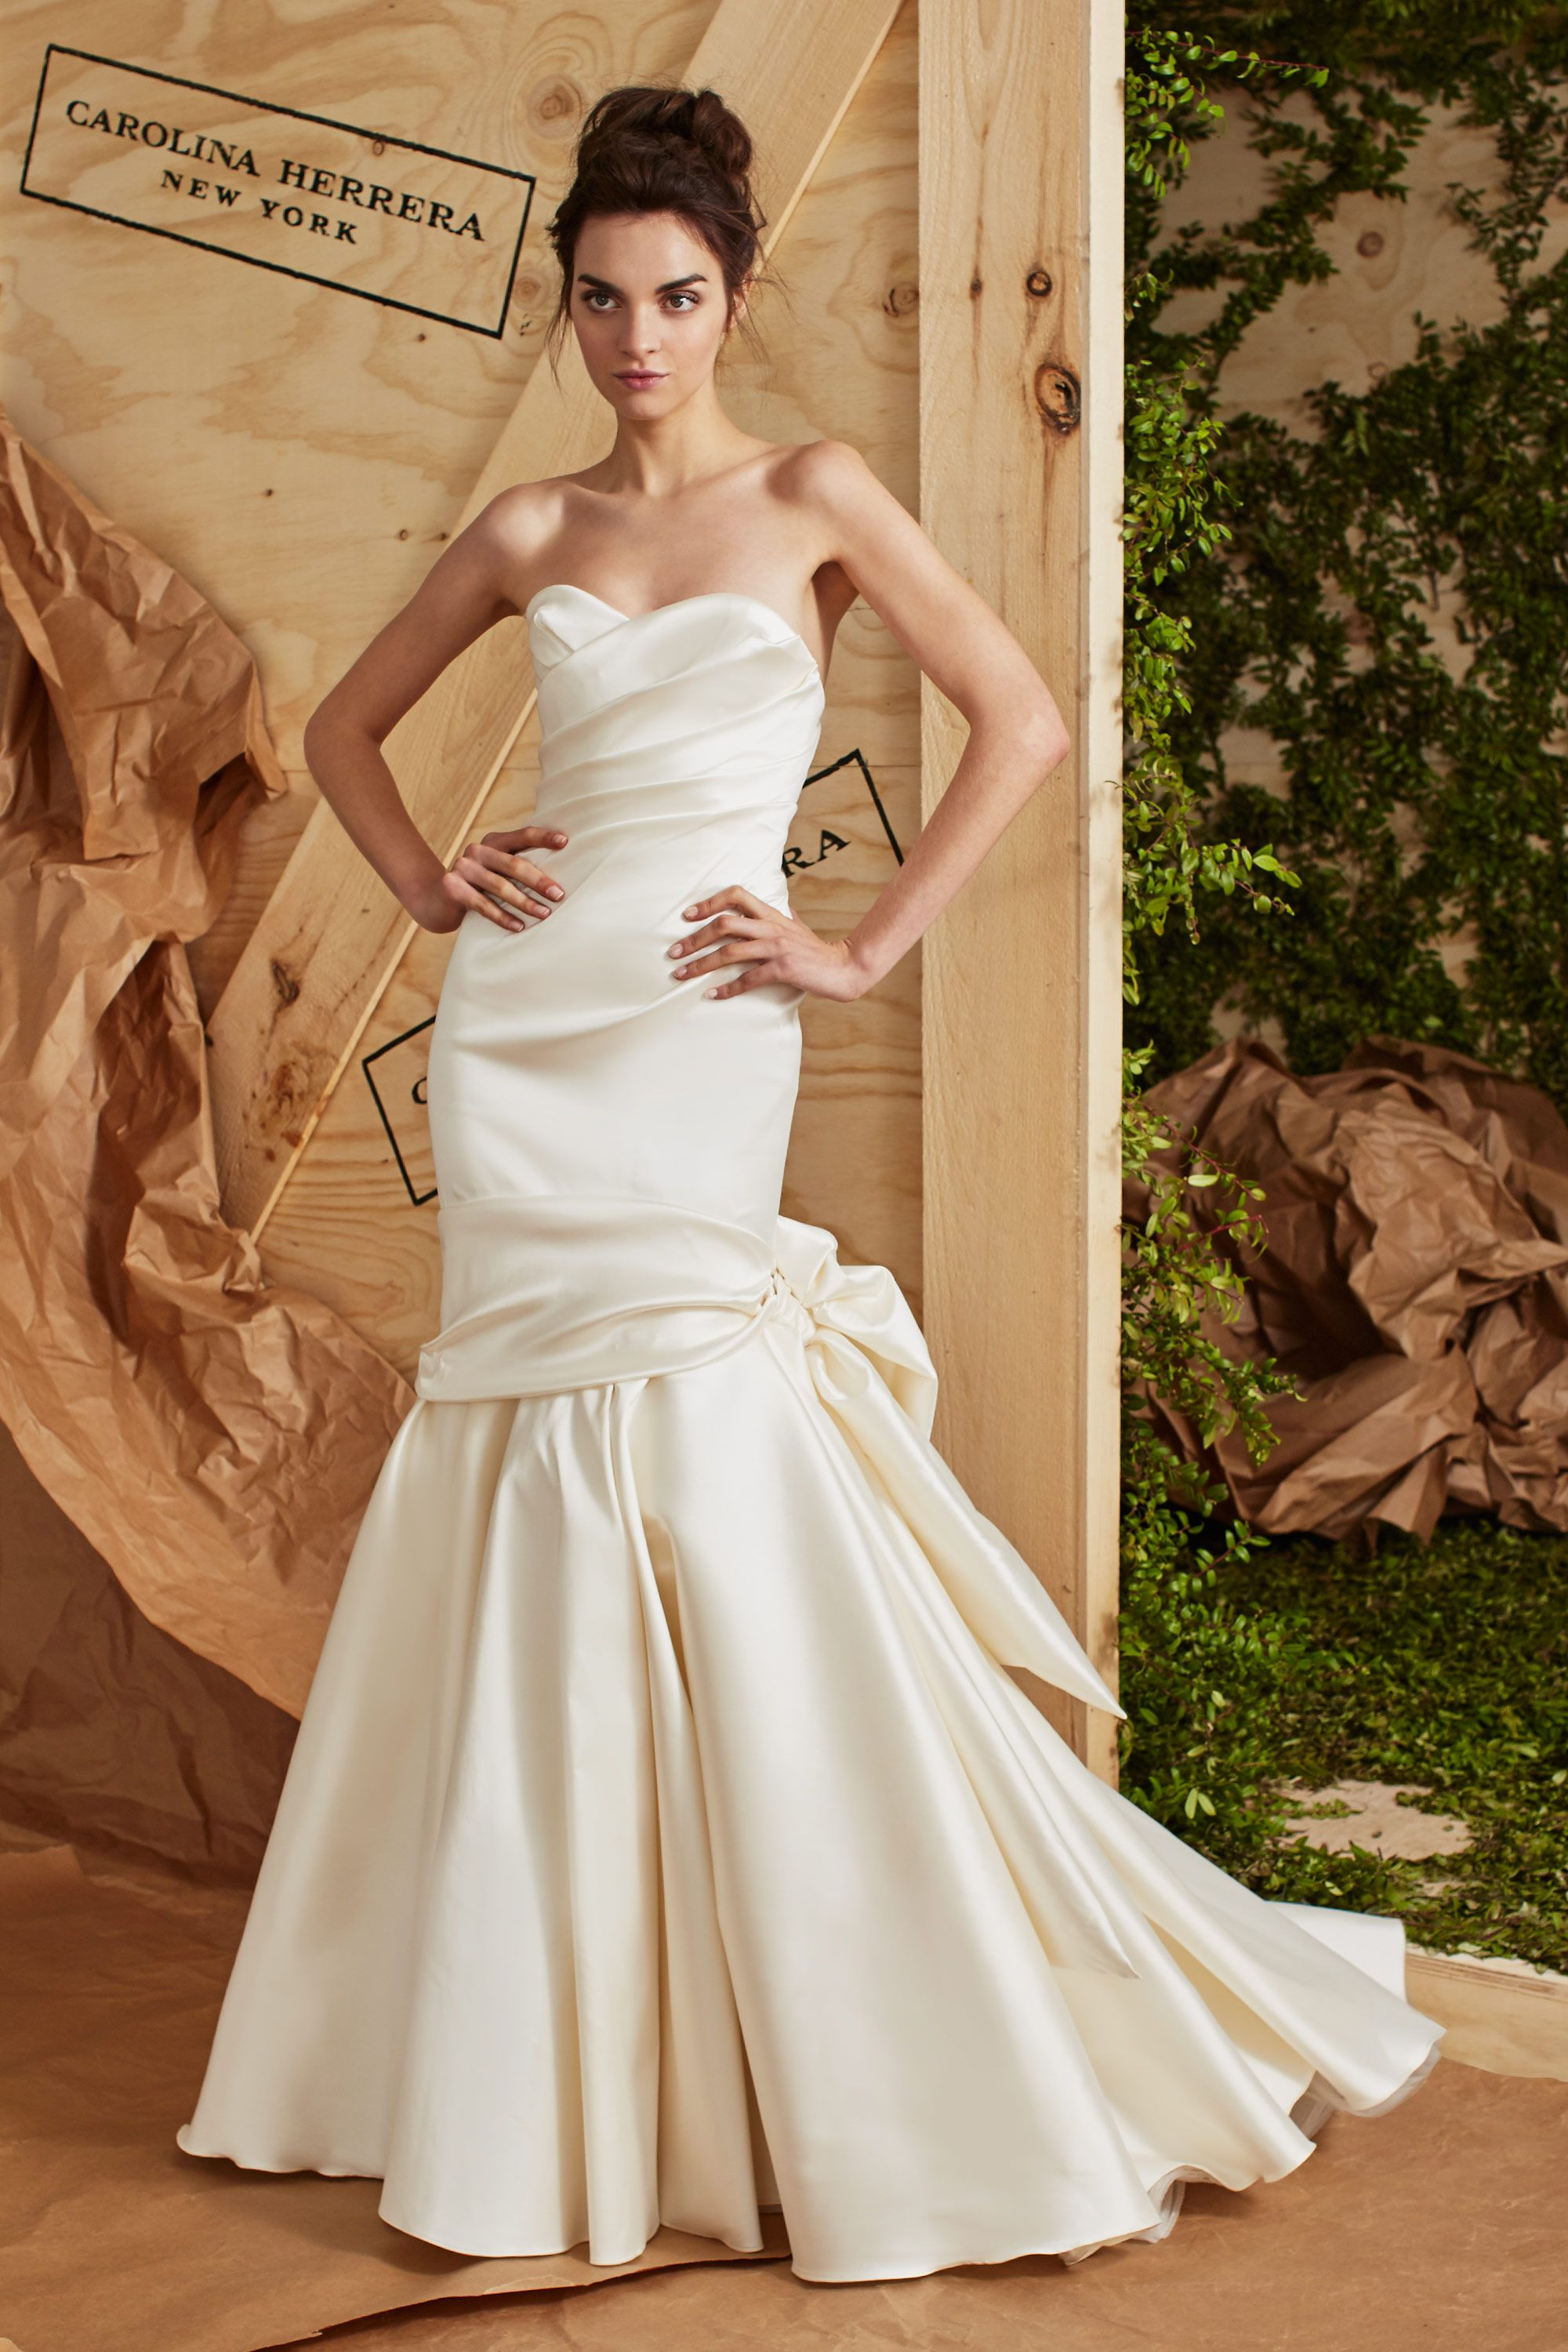 Carolina Herrera is availabe at the Nordstrom Wedding Suite ...